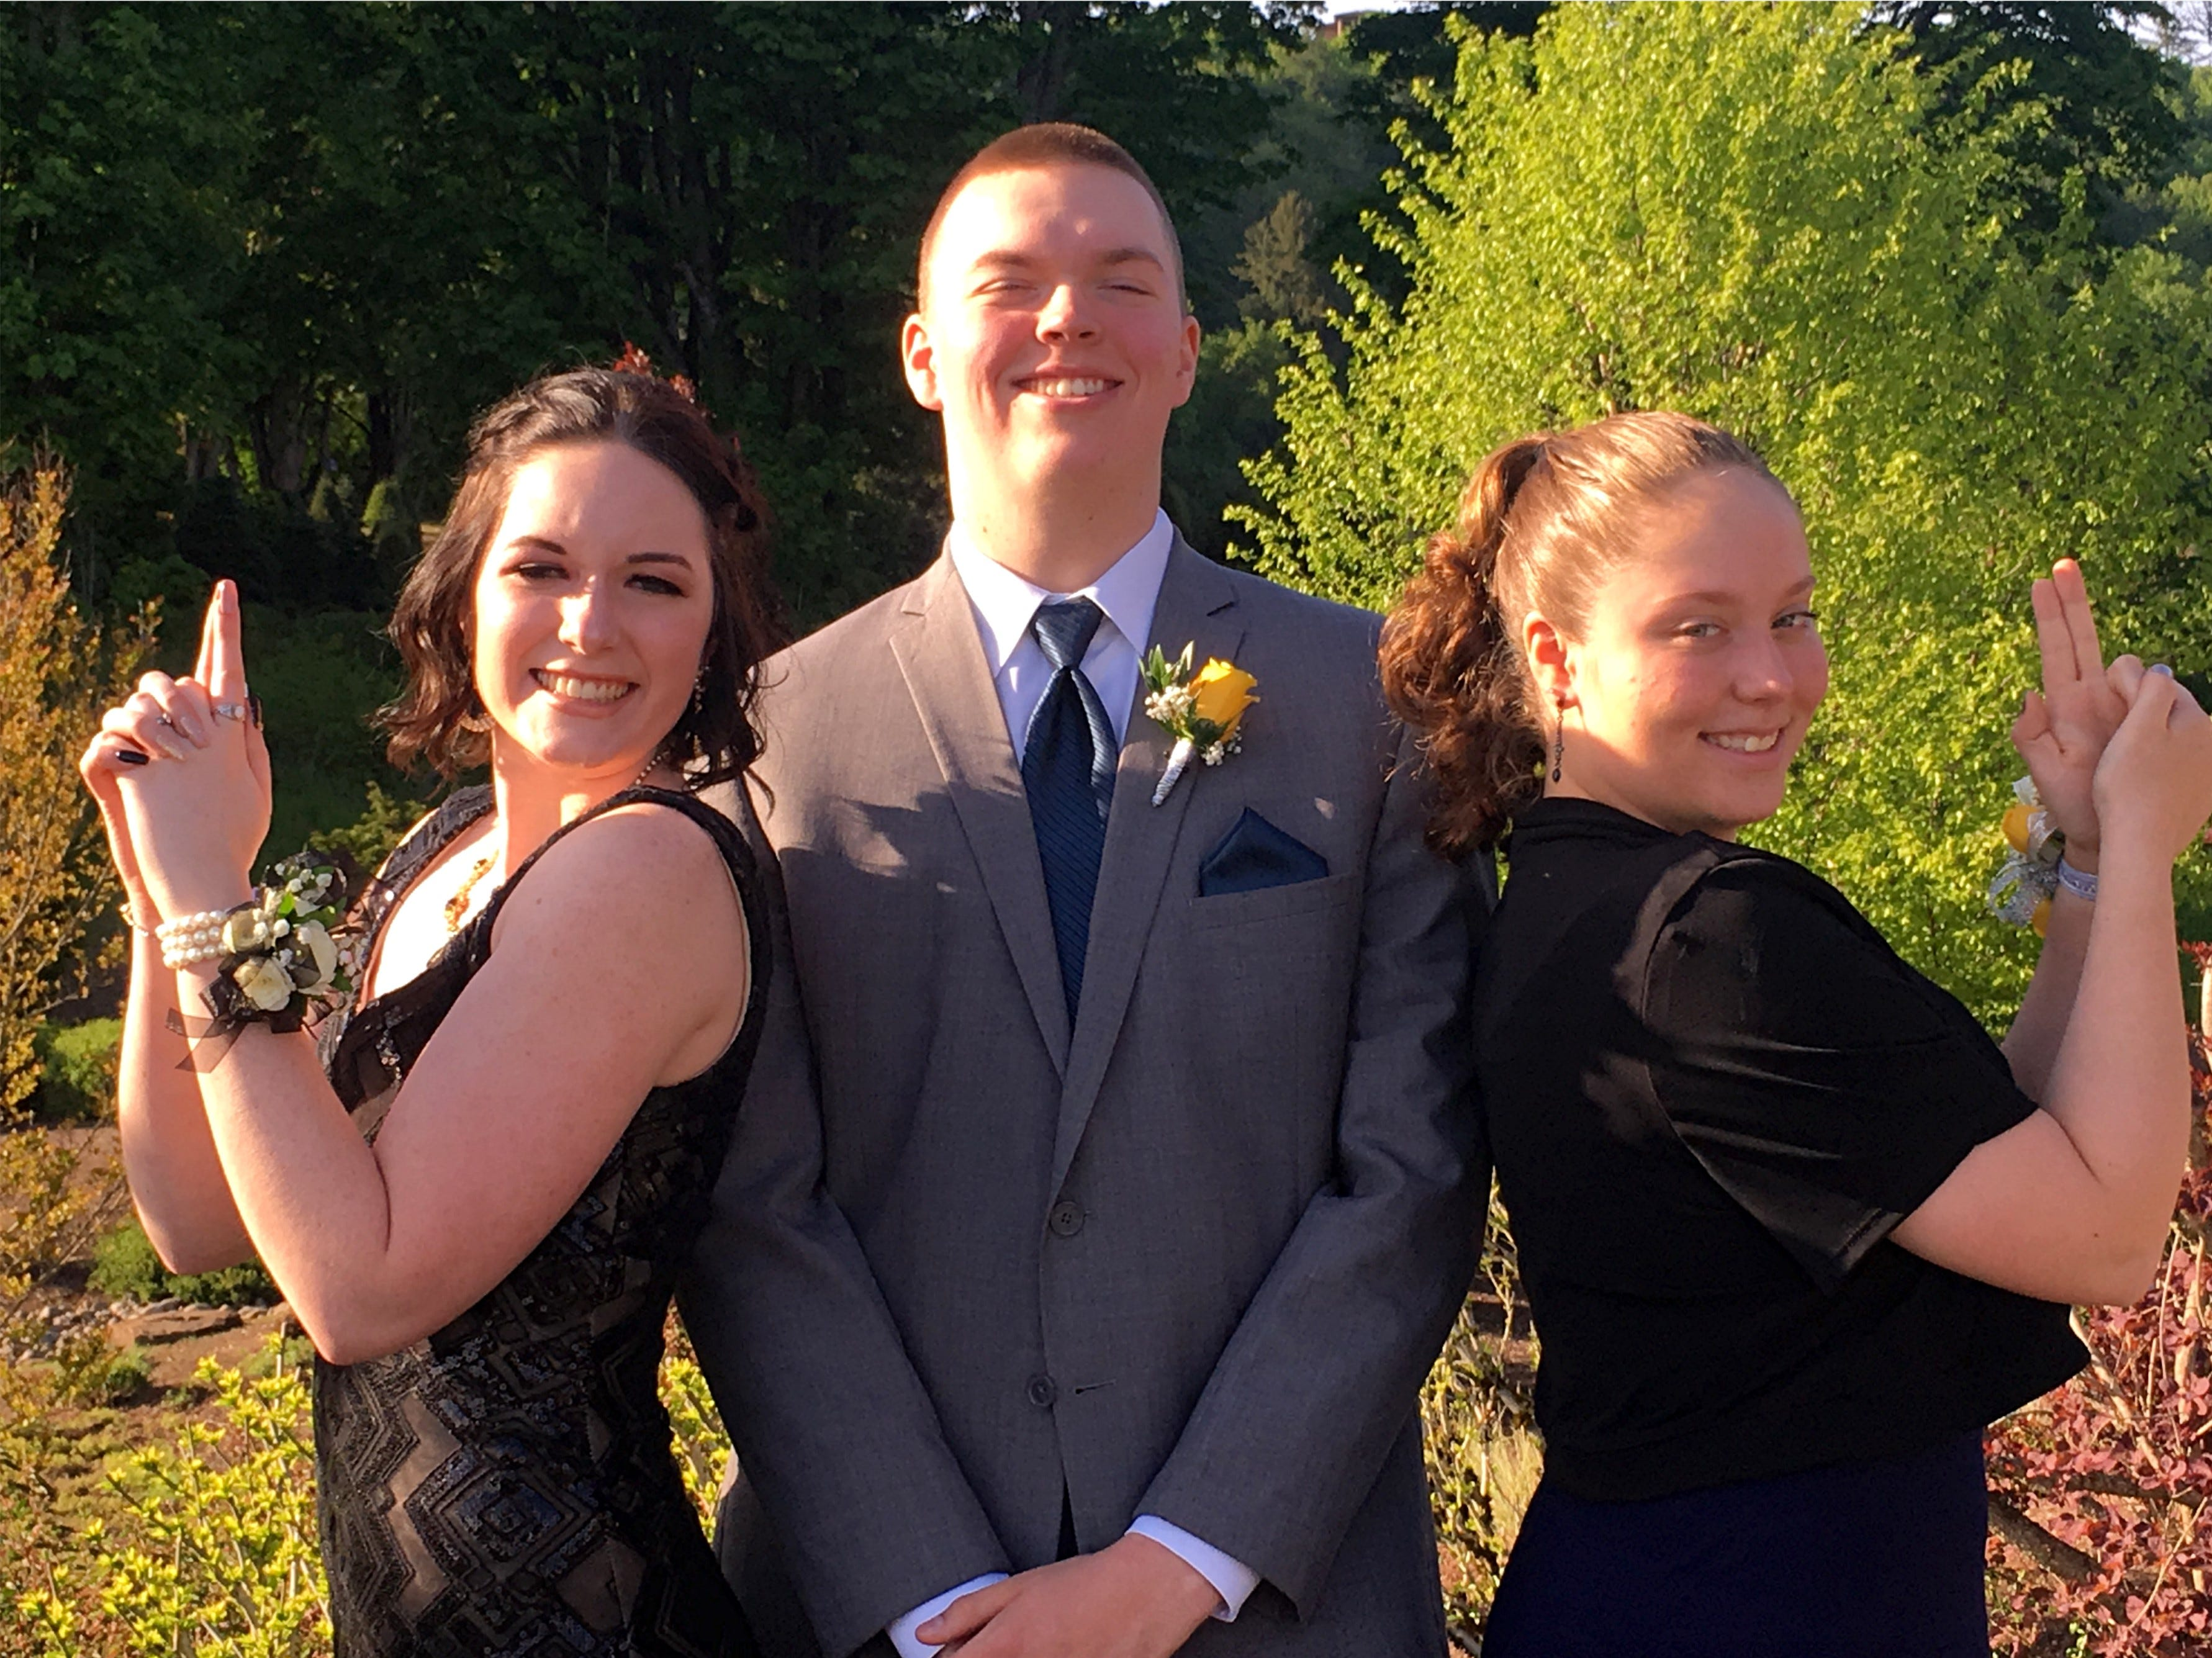 Mikayla Wood (Scio, junior), Garrett Kincaid (Lyons, senior) and his sister Sidney Kincaid (Lyons, junior) pose for photos at the Oregon Connections Academy's fourth annual prom at Eola Viticulture Center, May 4th, 2019. Garrett is the Student Body President and Mikayla is the Vice President.